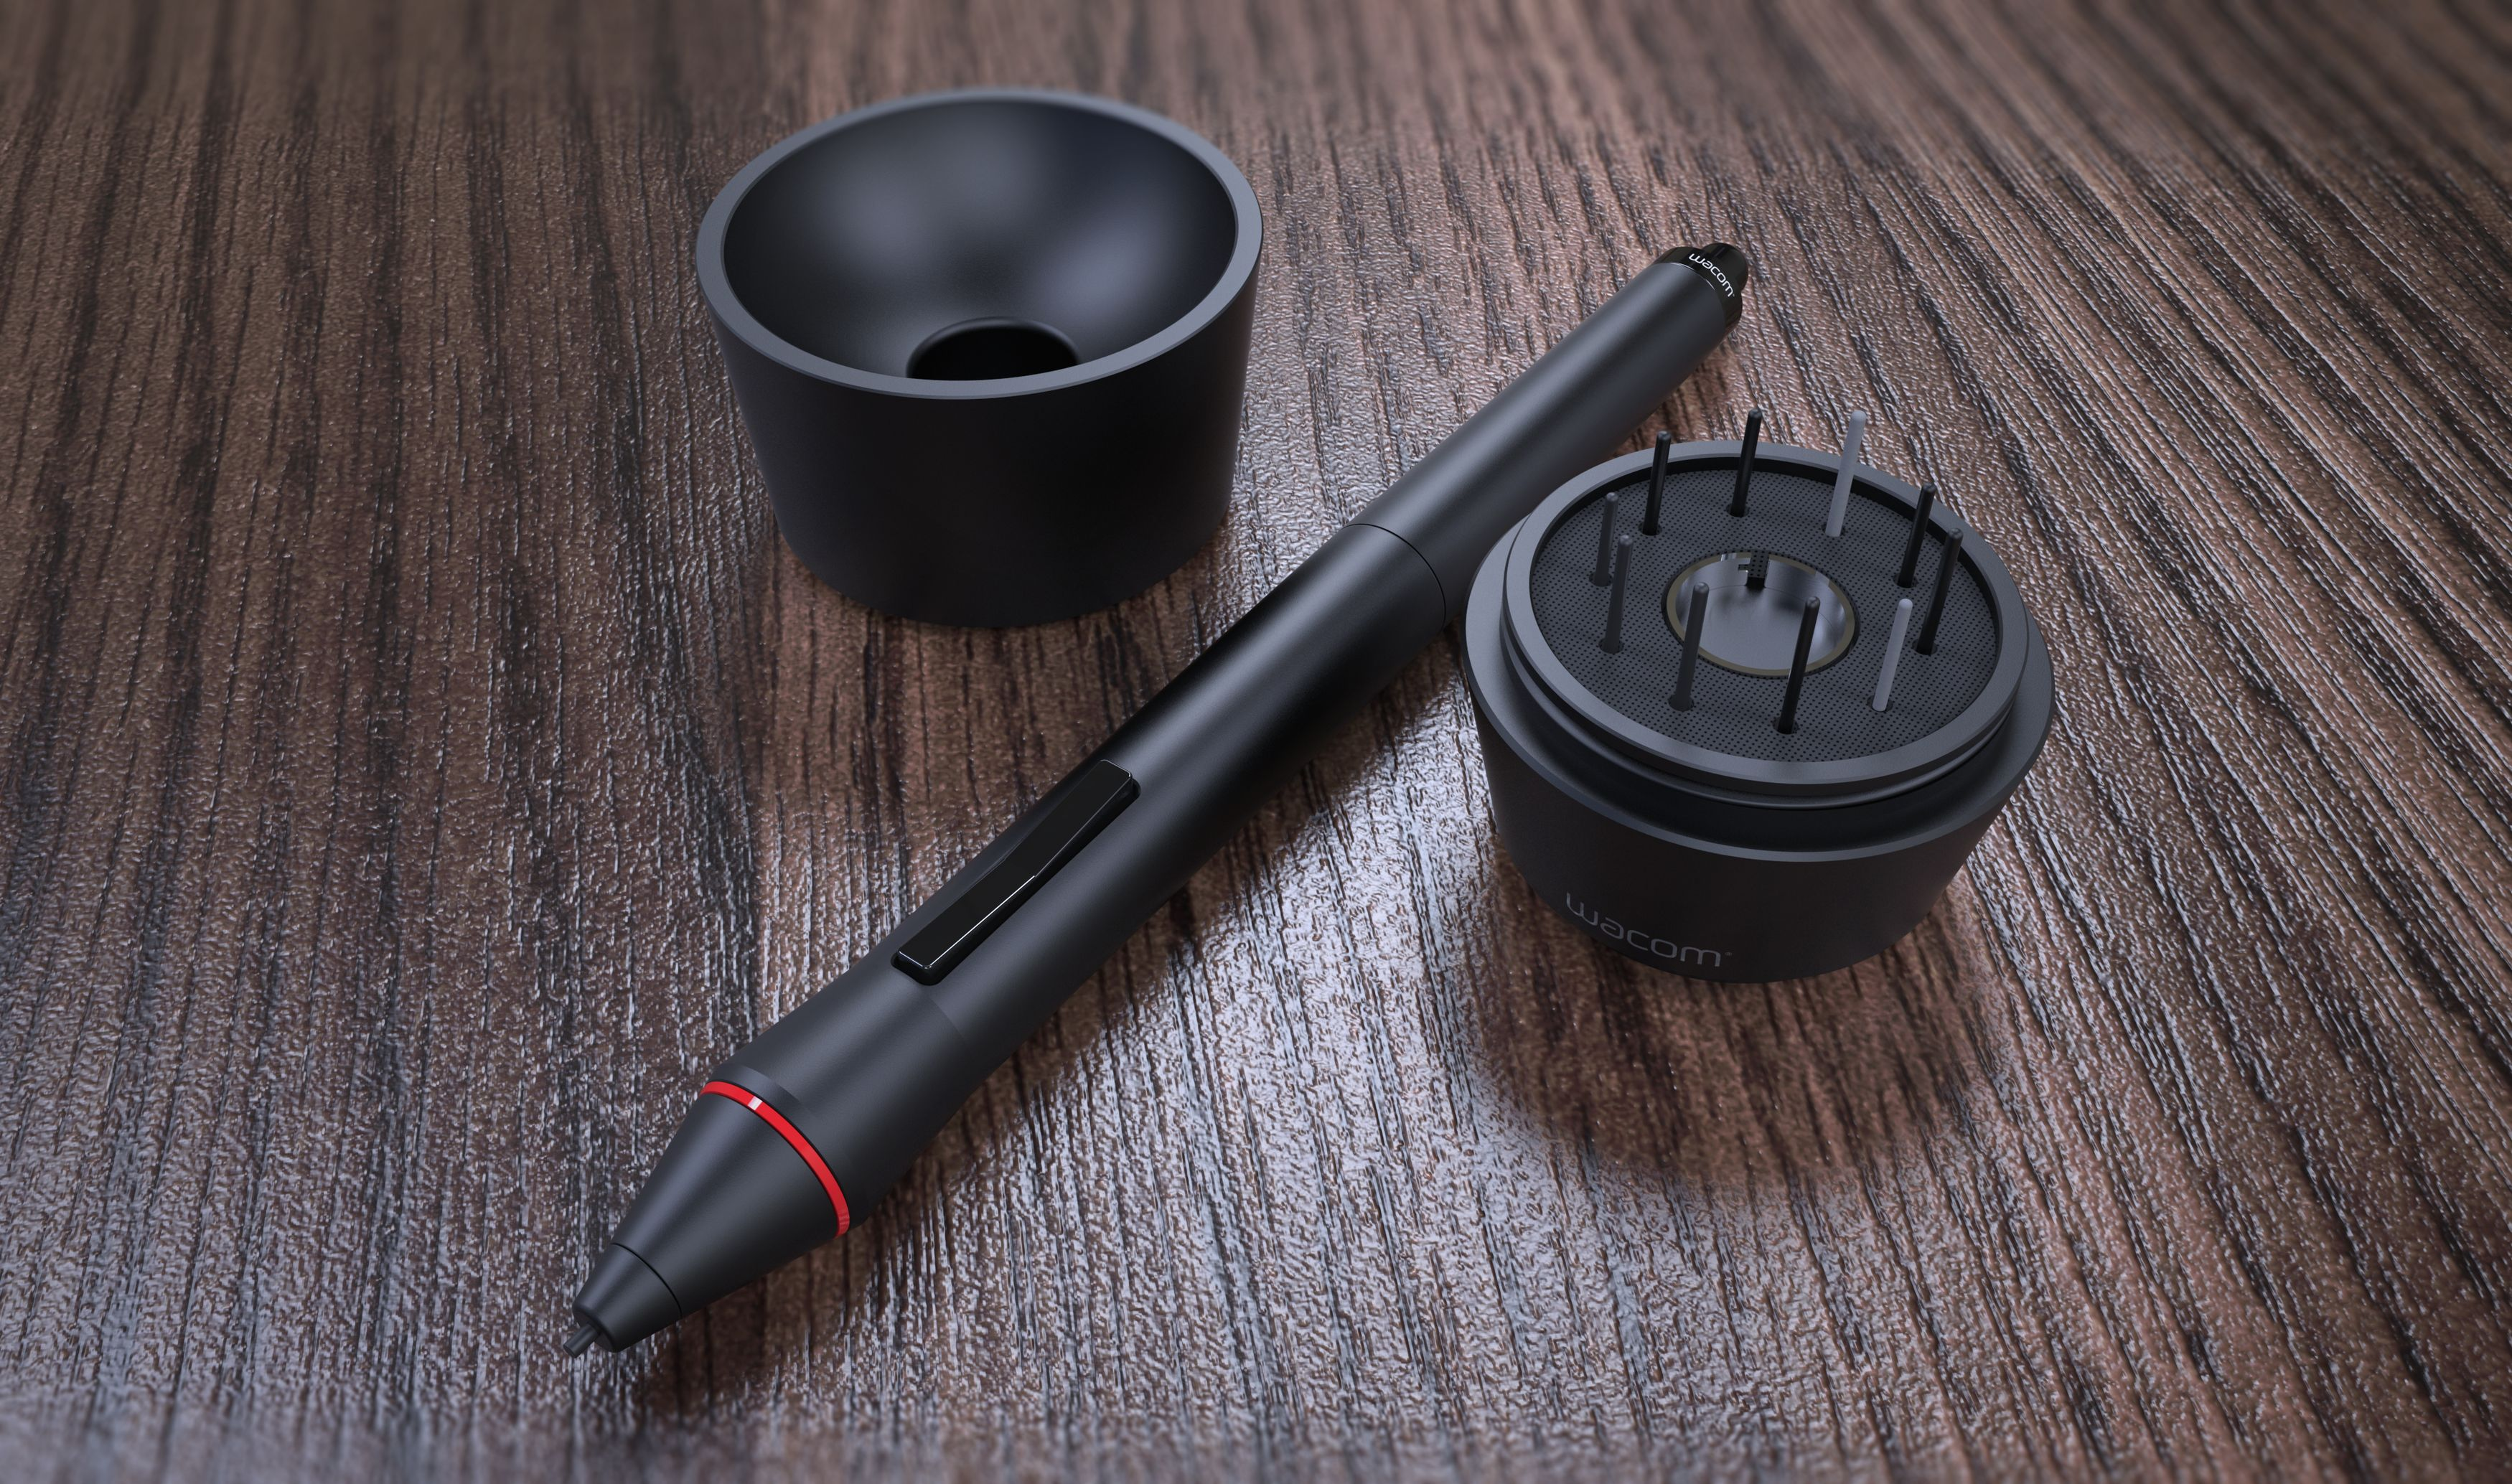 Pen Holders For Cars Wacom Pen And Holder Autodesk Online Gallery